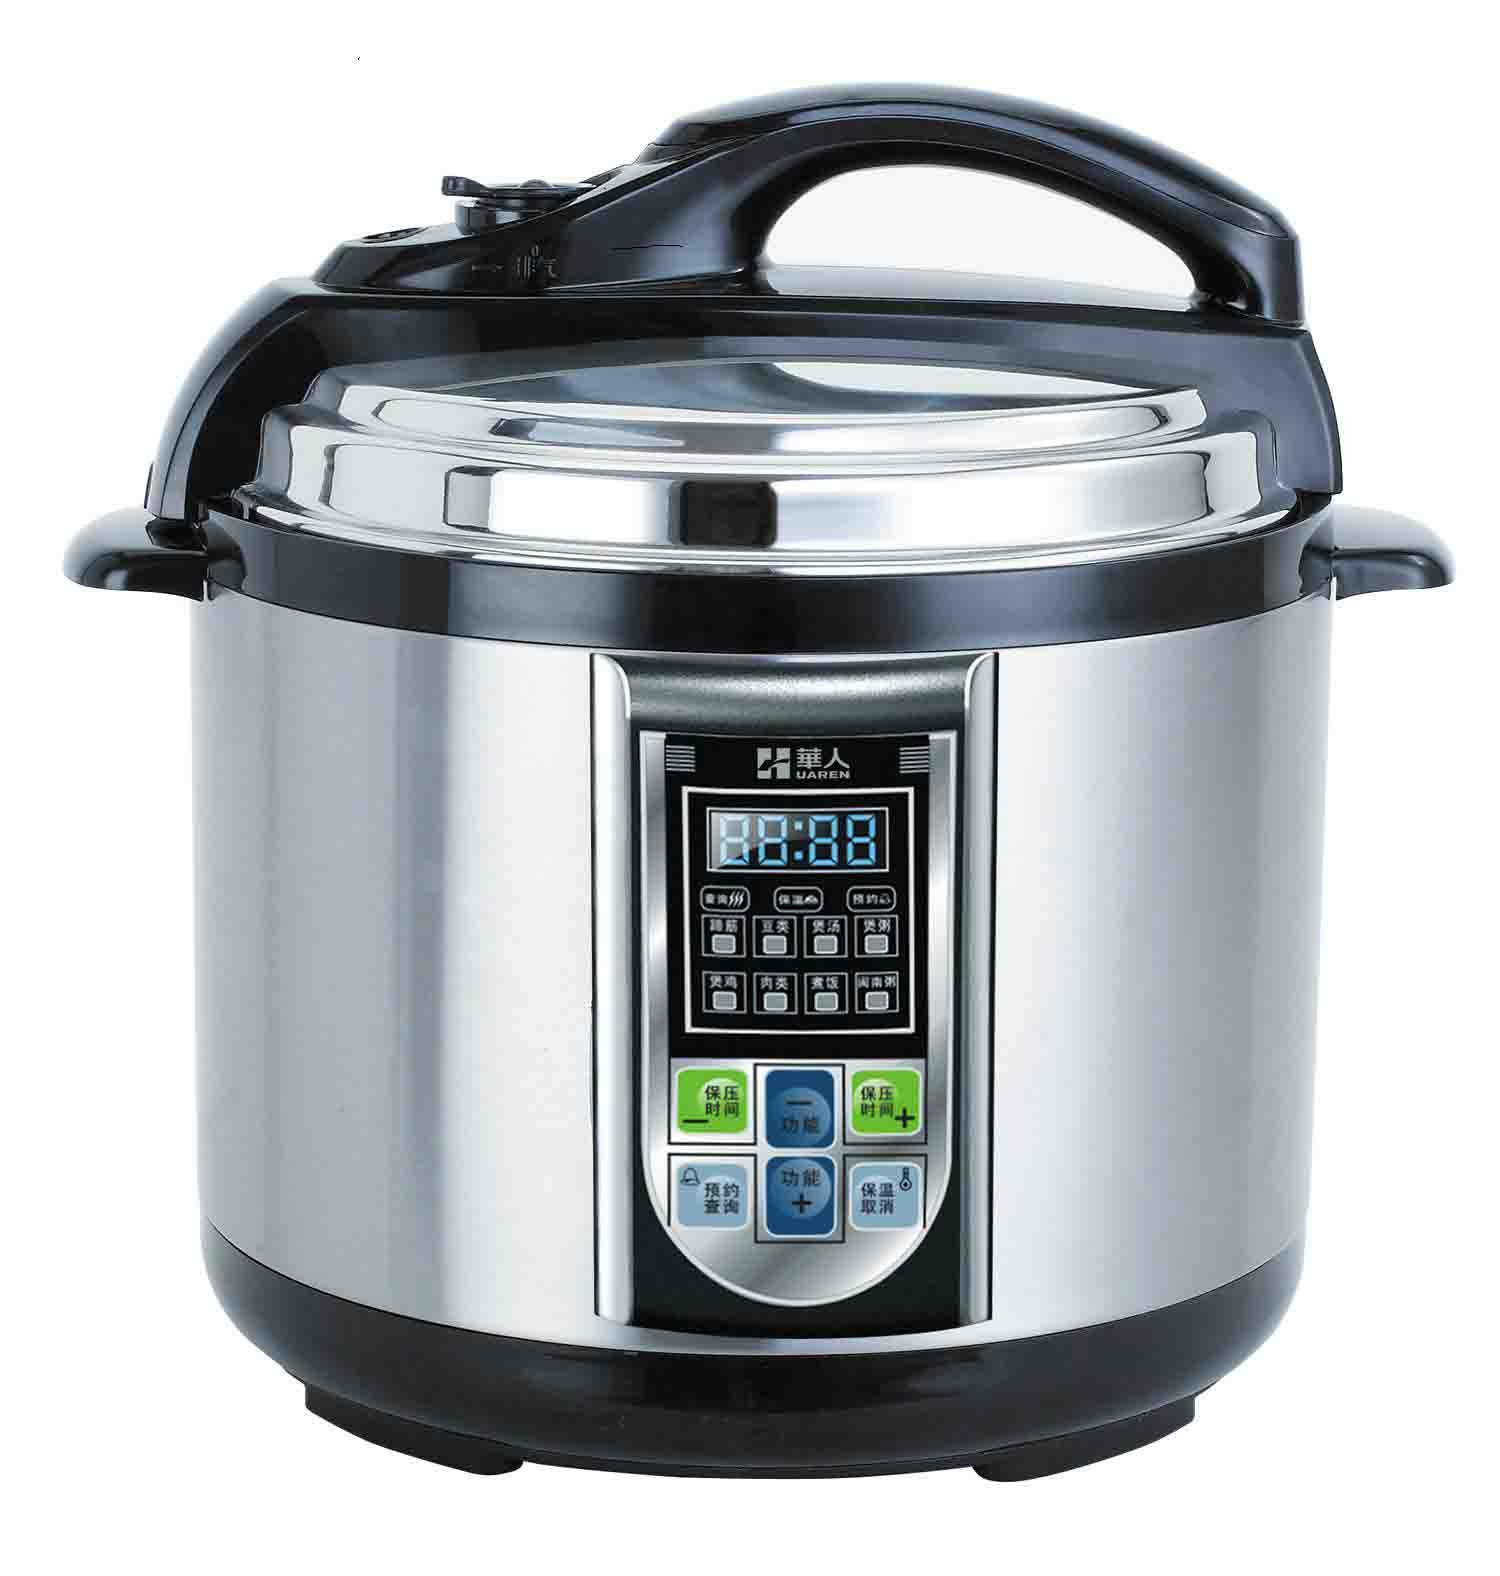 New Electric Pressure Cookers ~ China electric pressure cooker hyw b computer